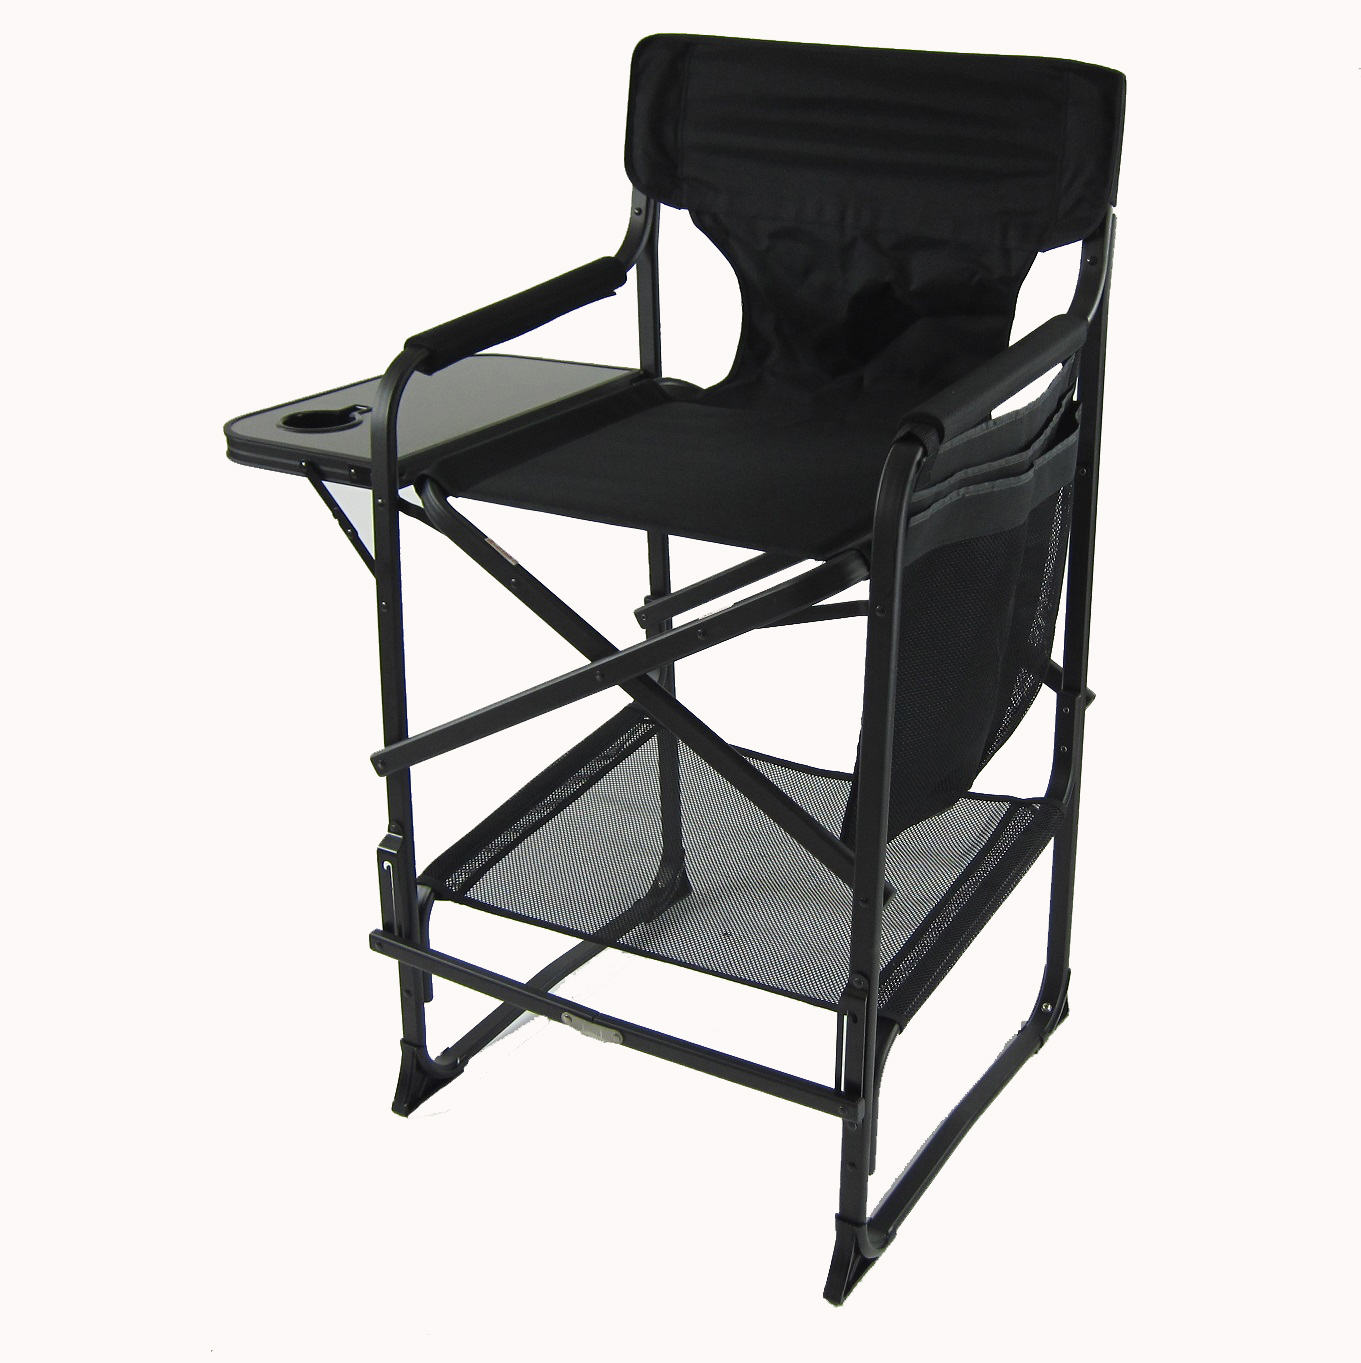 Heavy Duty Tall Directors Chair with Side Table by Pacific Imports